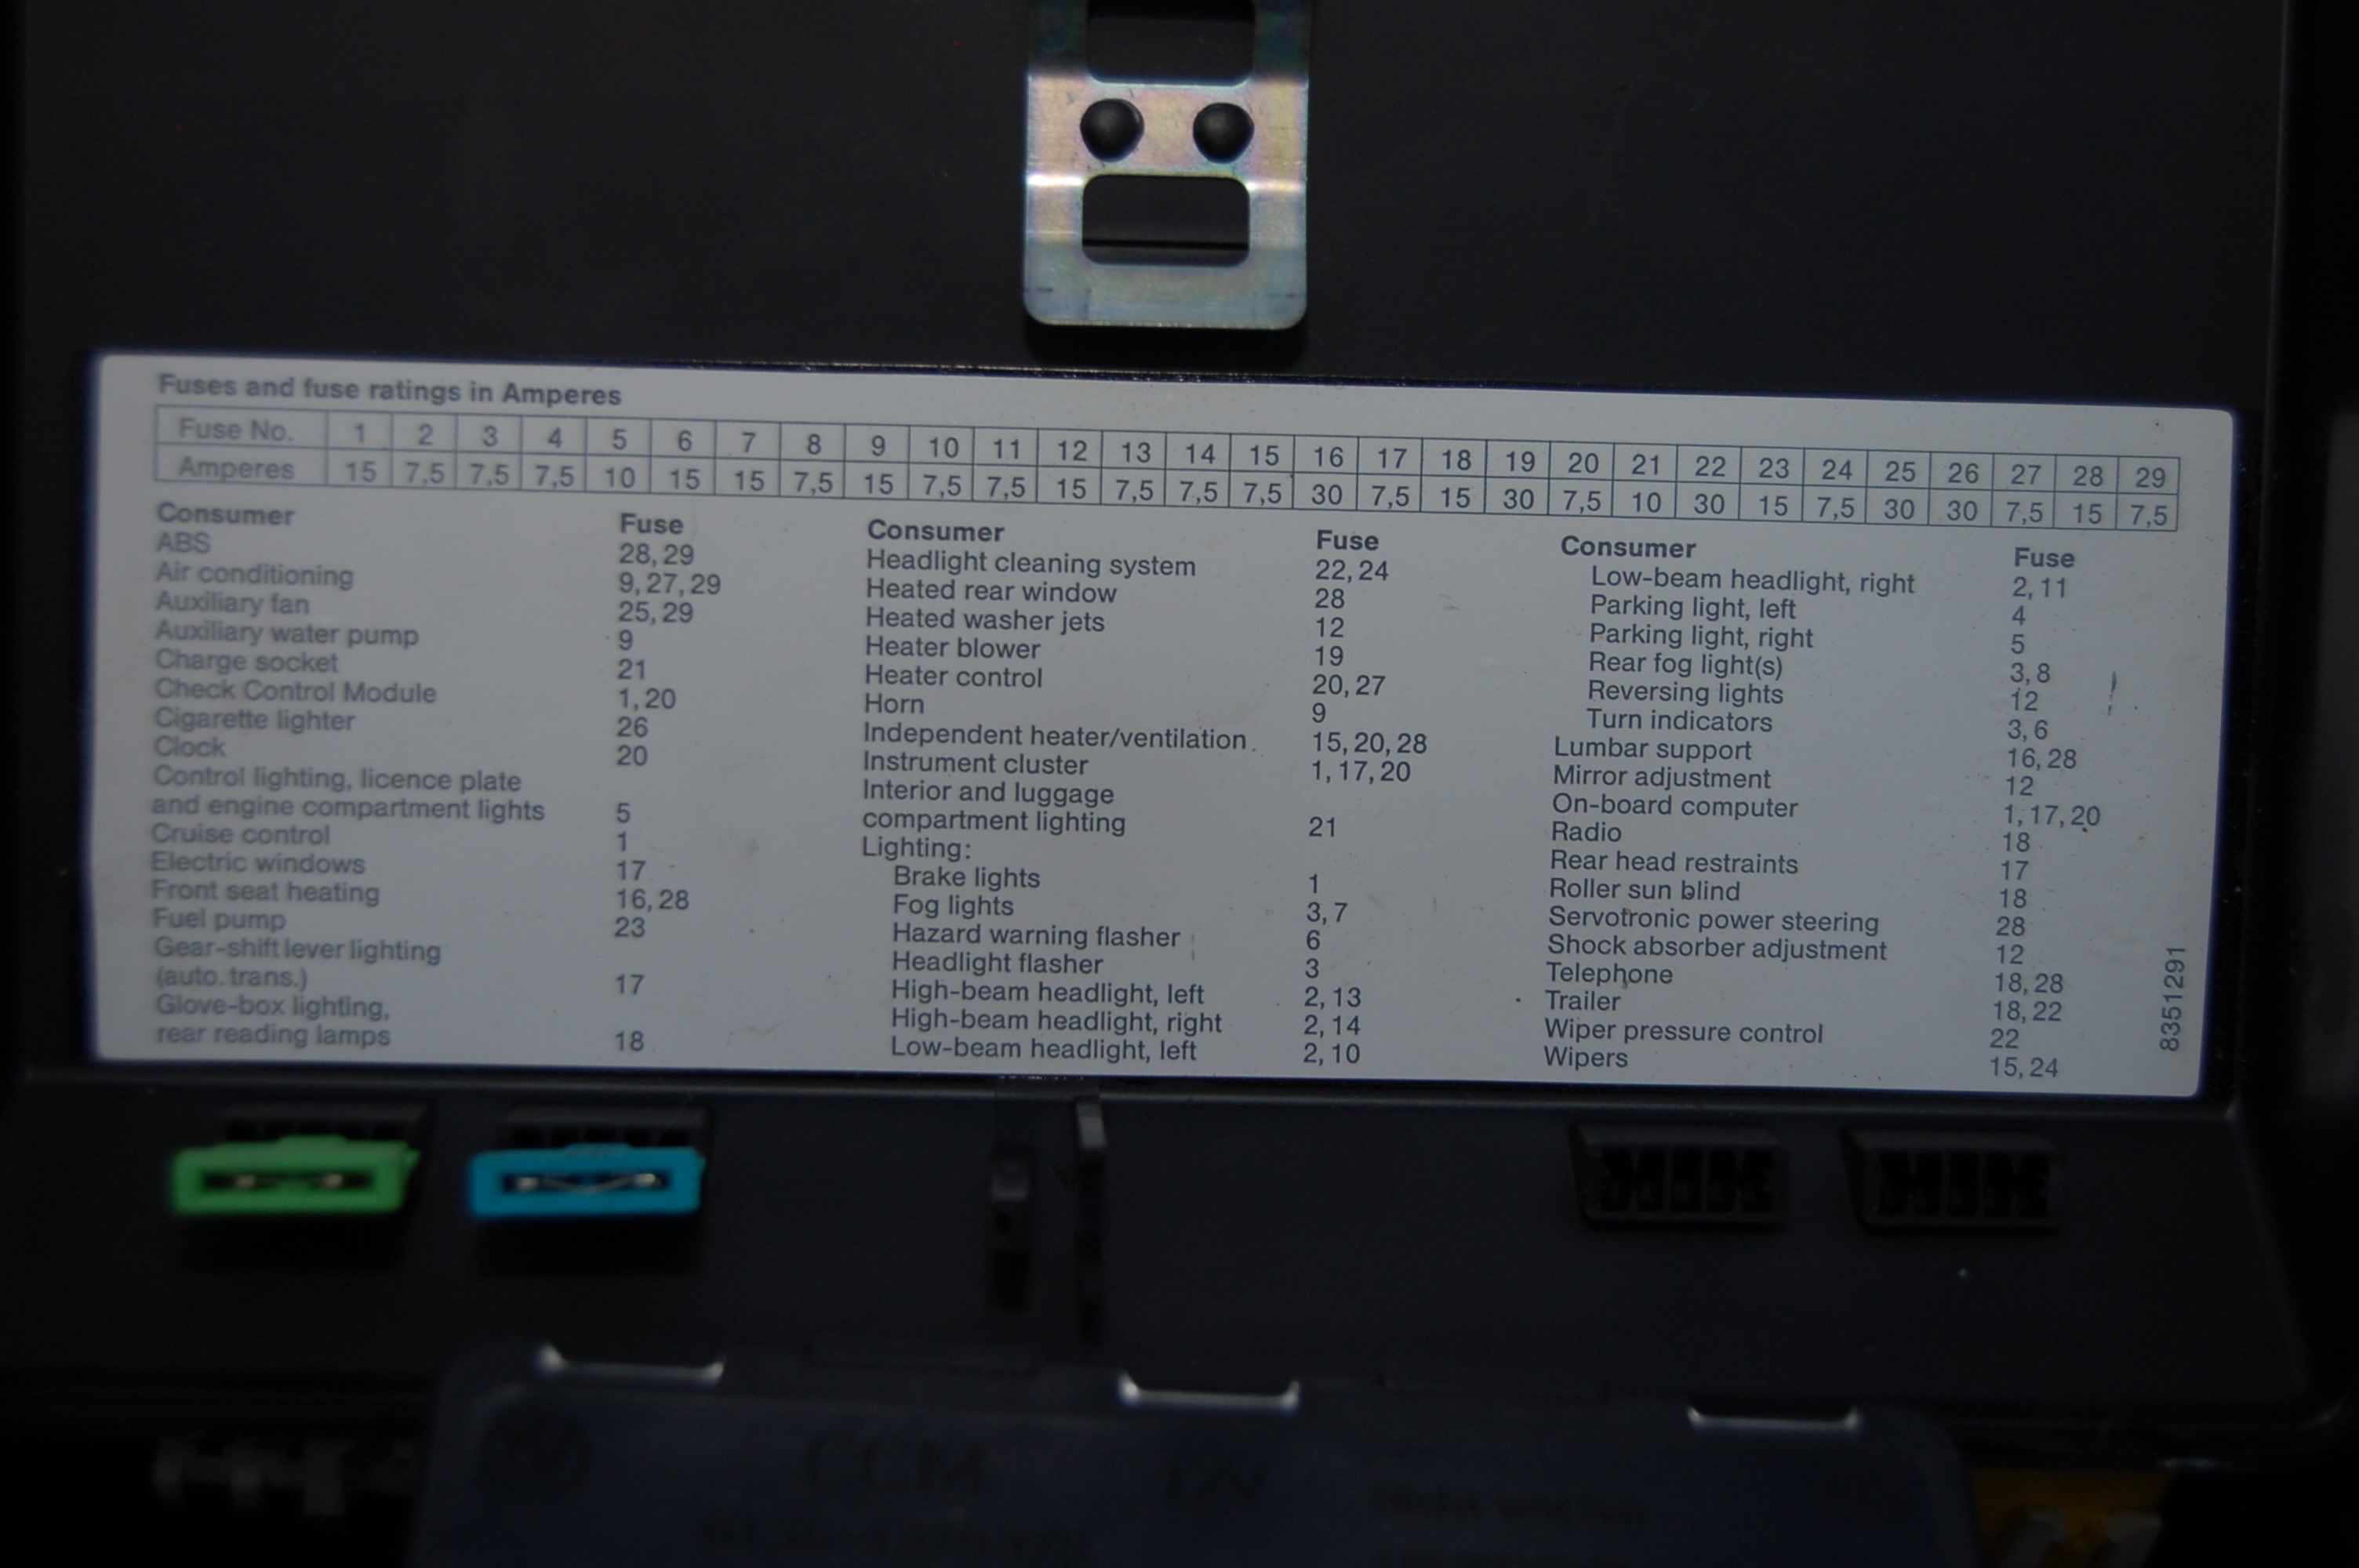 hight resolution of e34 fuse box diagram wiring diagram mega e34 fuse box diagram